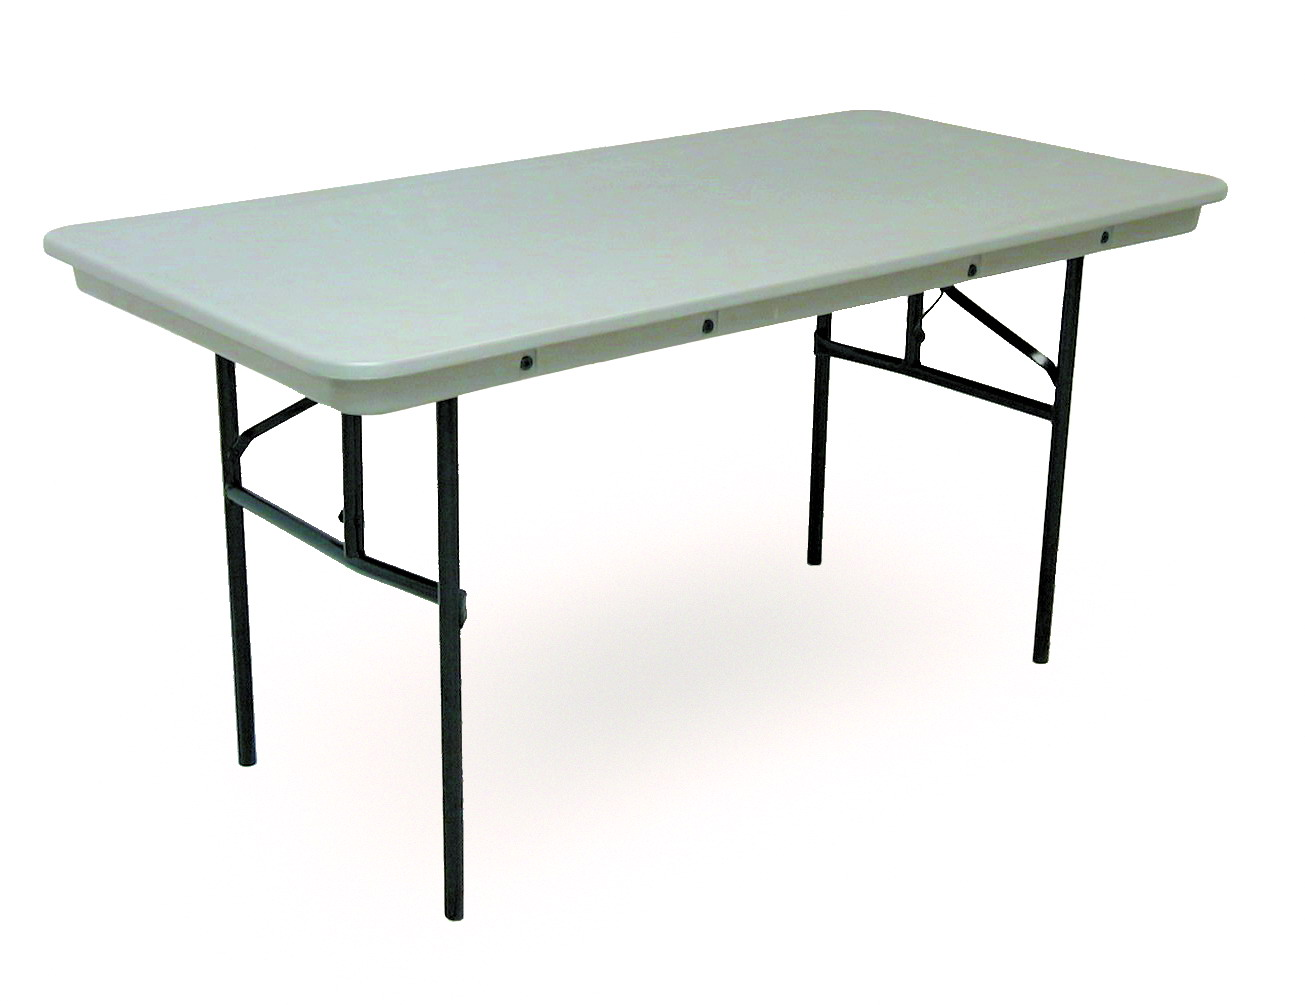 42 Inch Square Folding Table Images 63 Luxury Small